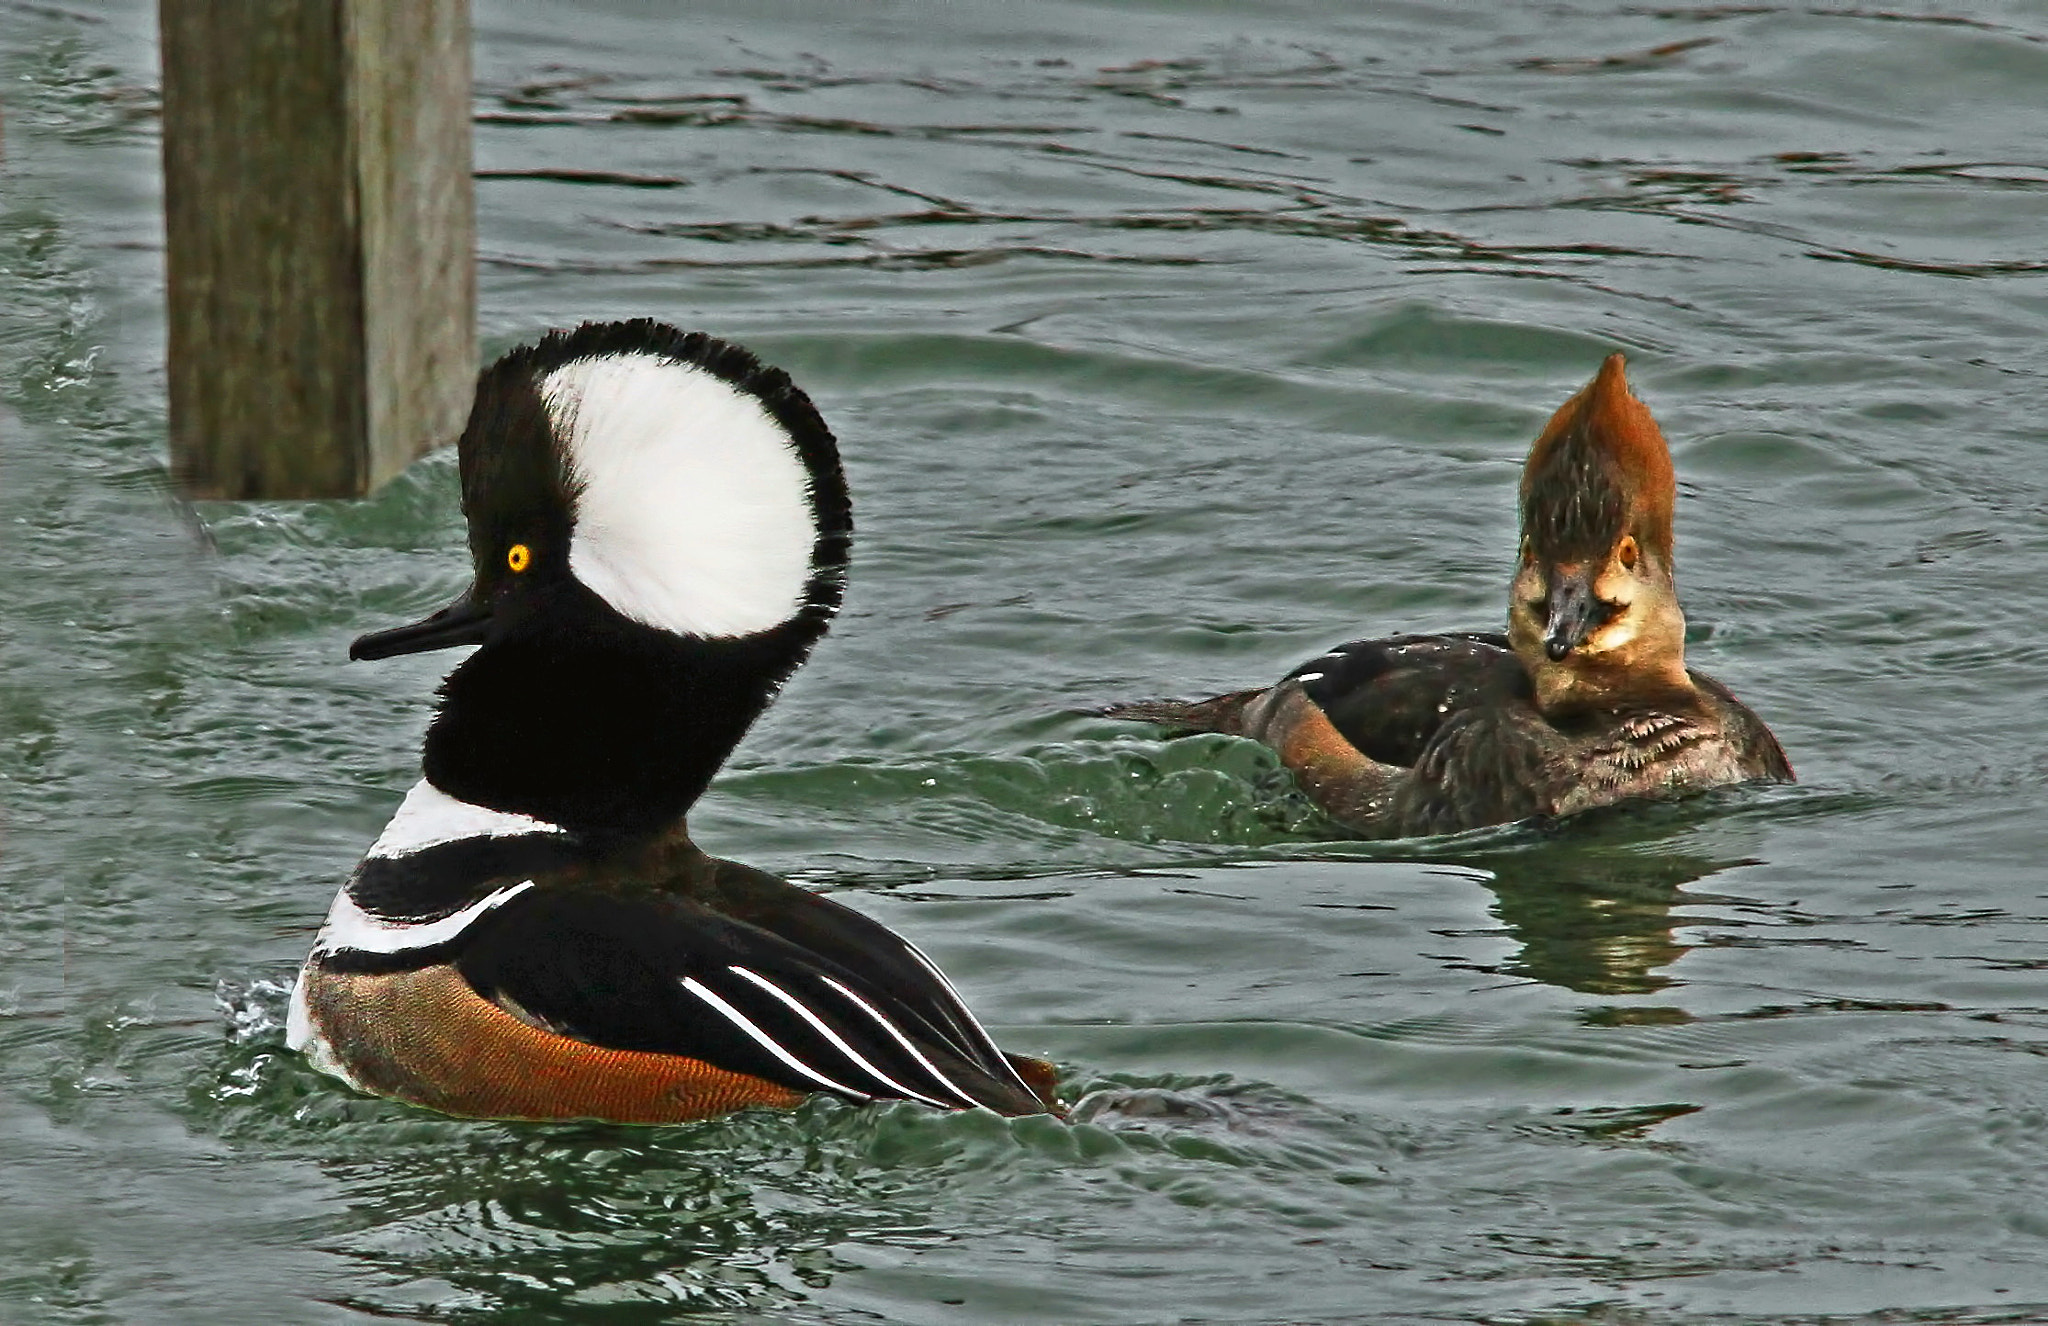 Photograph Hooded Mergansers by Bill McCormack on 500px